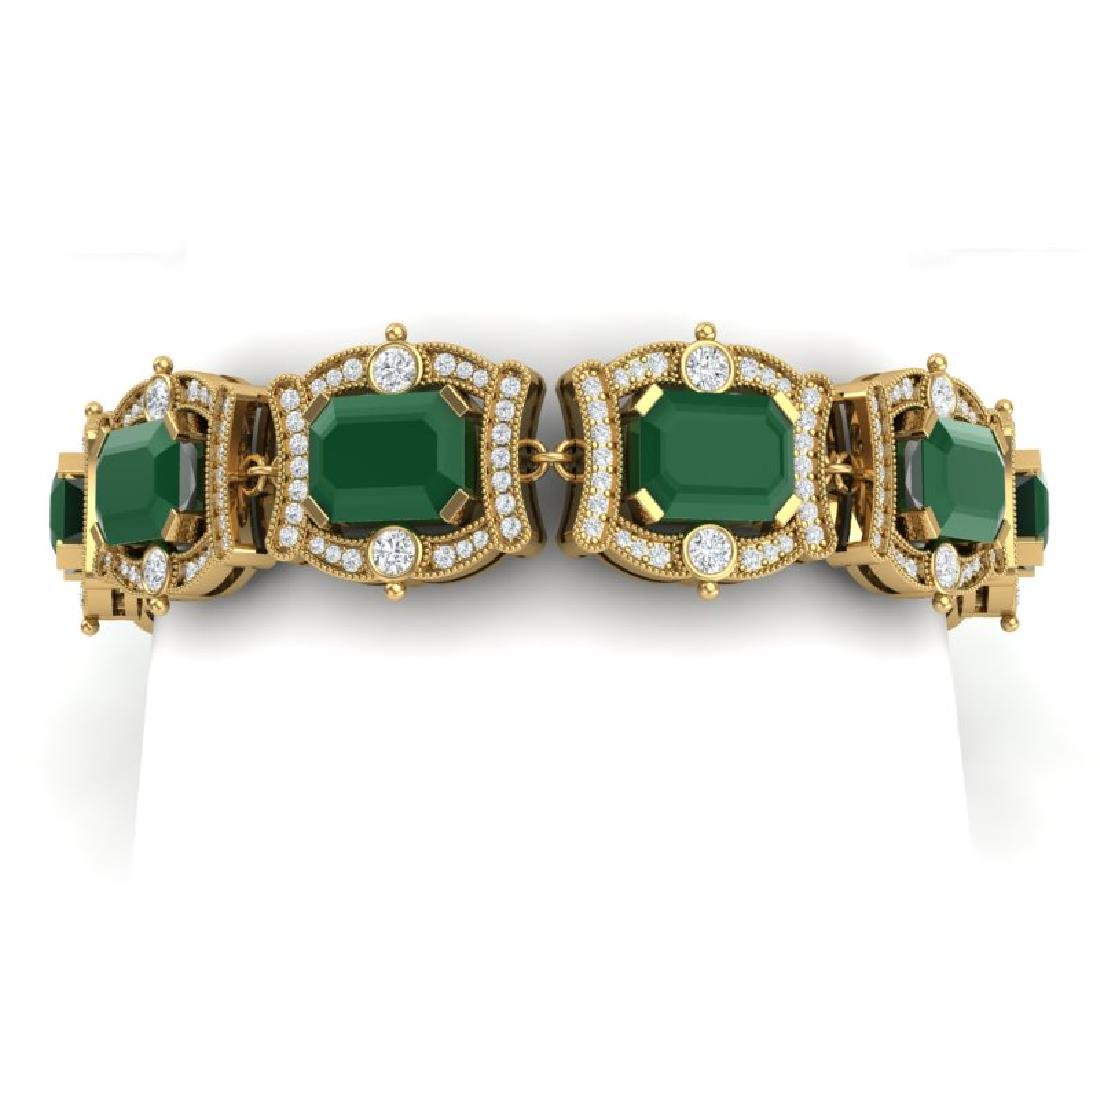 43.87 CTW Royalty Emerald & VS Diamond Bracelet 18K